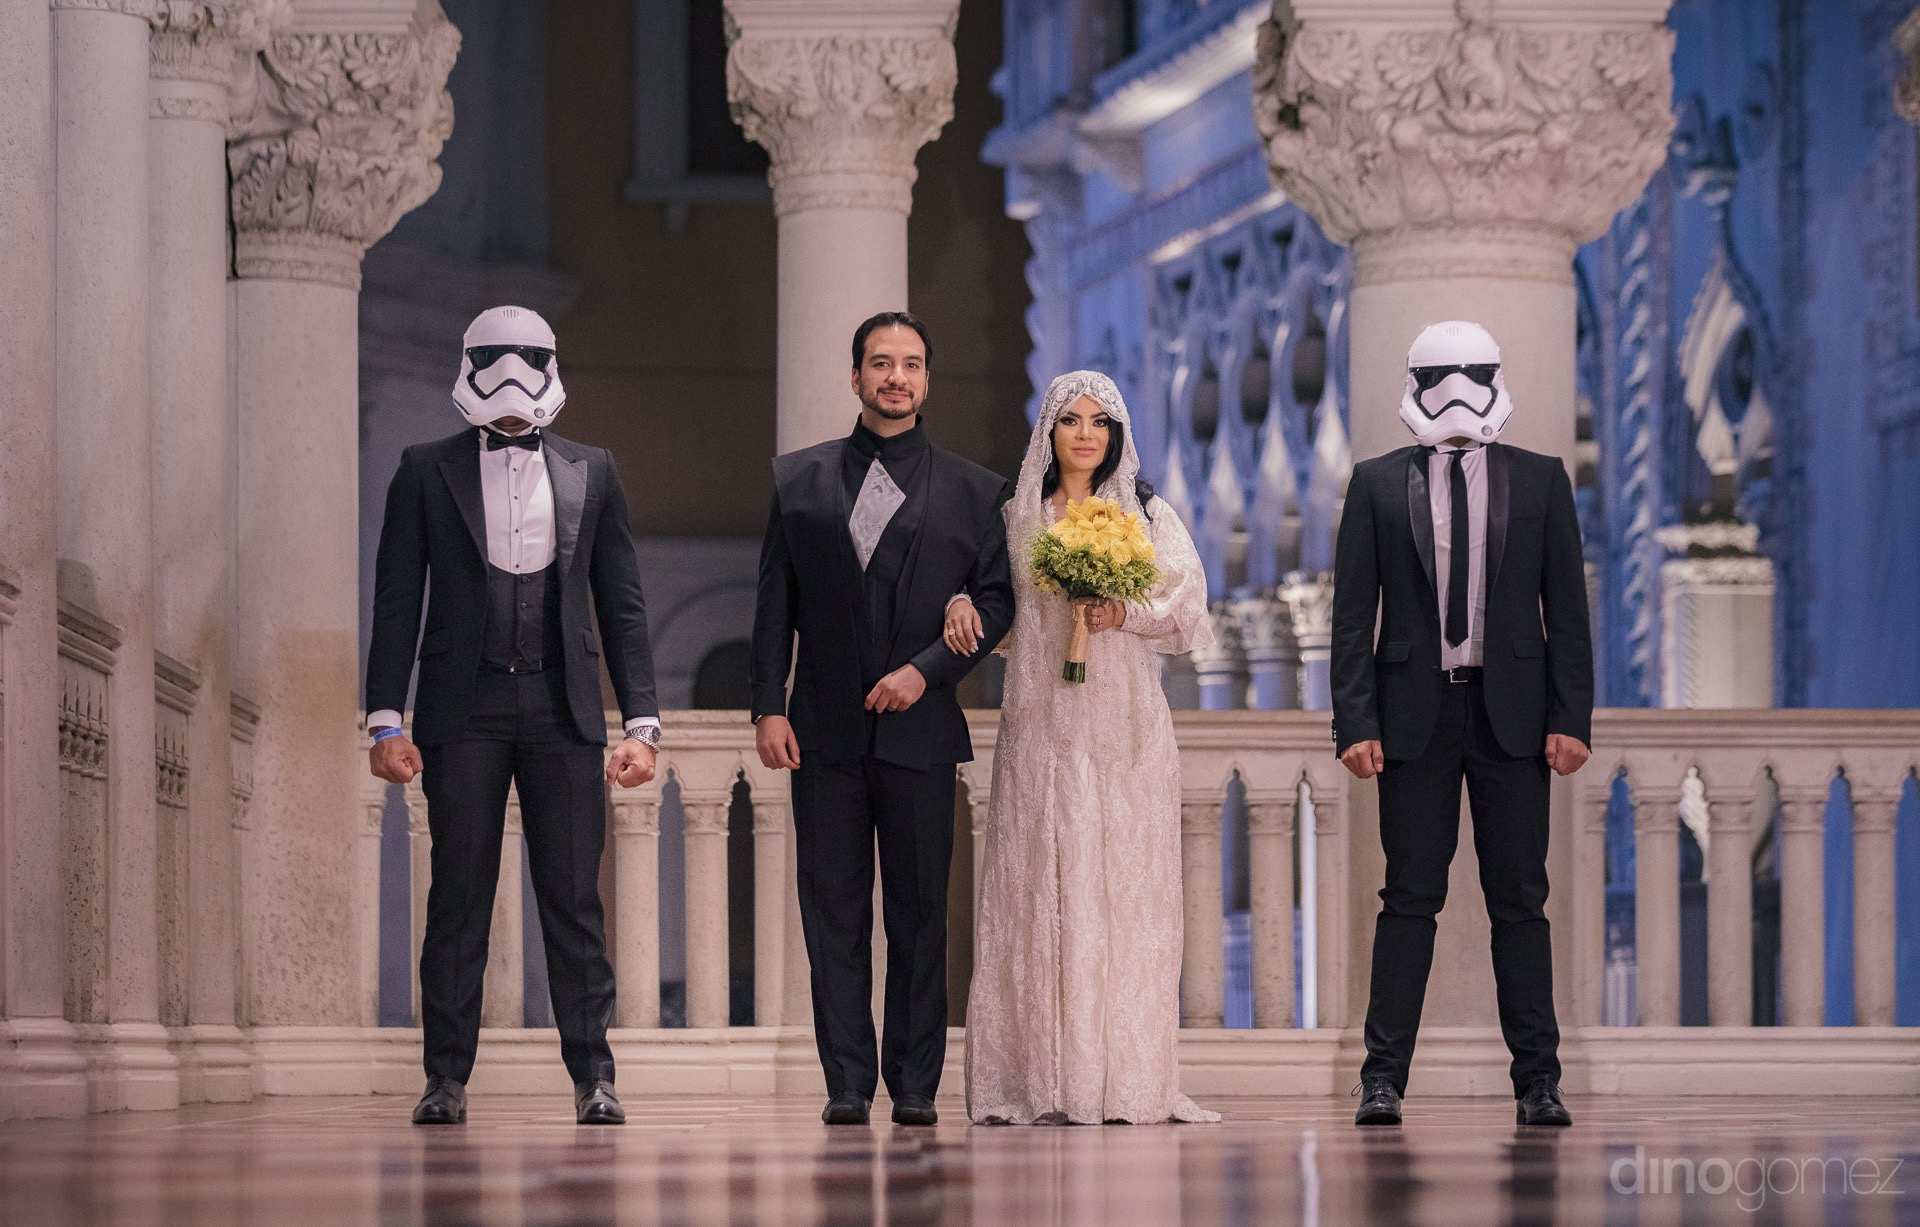 newlyweds standing arm in arm with guests wearing storm trooper